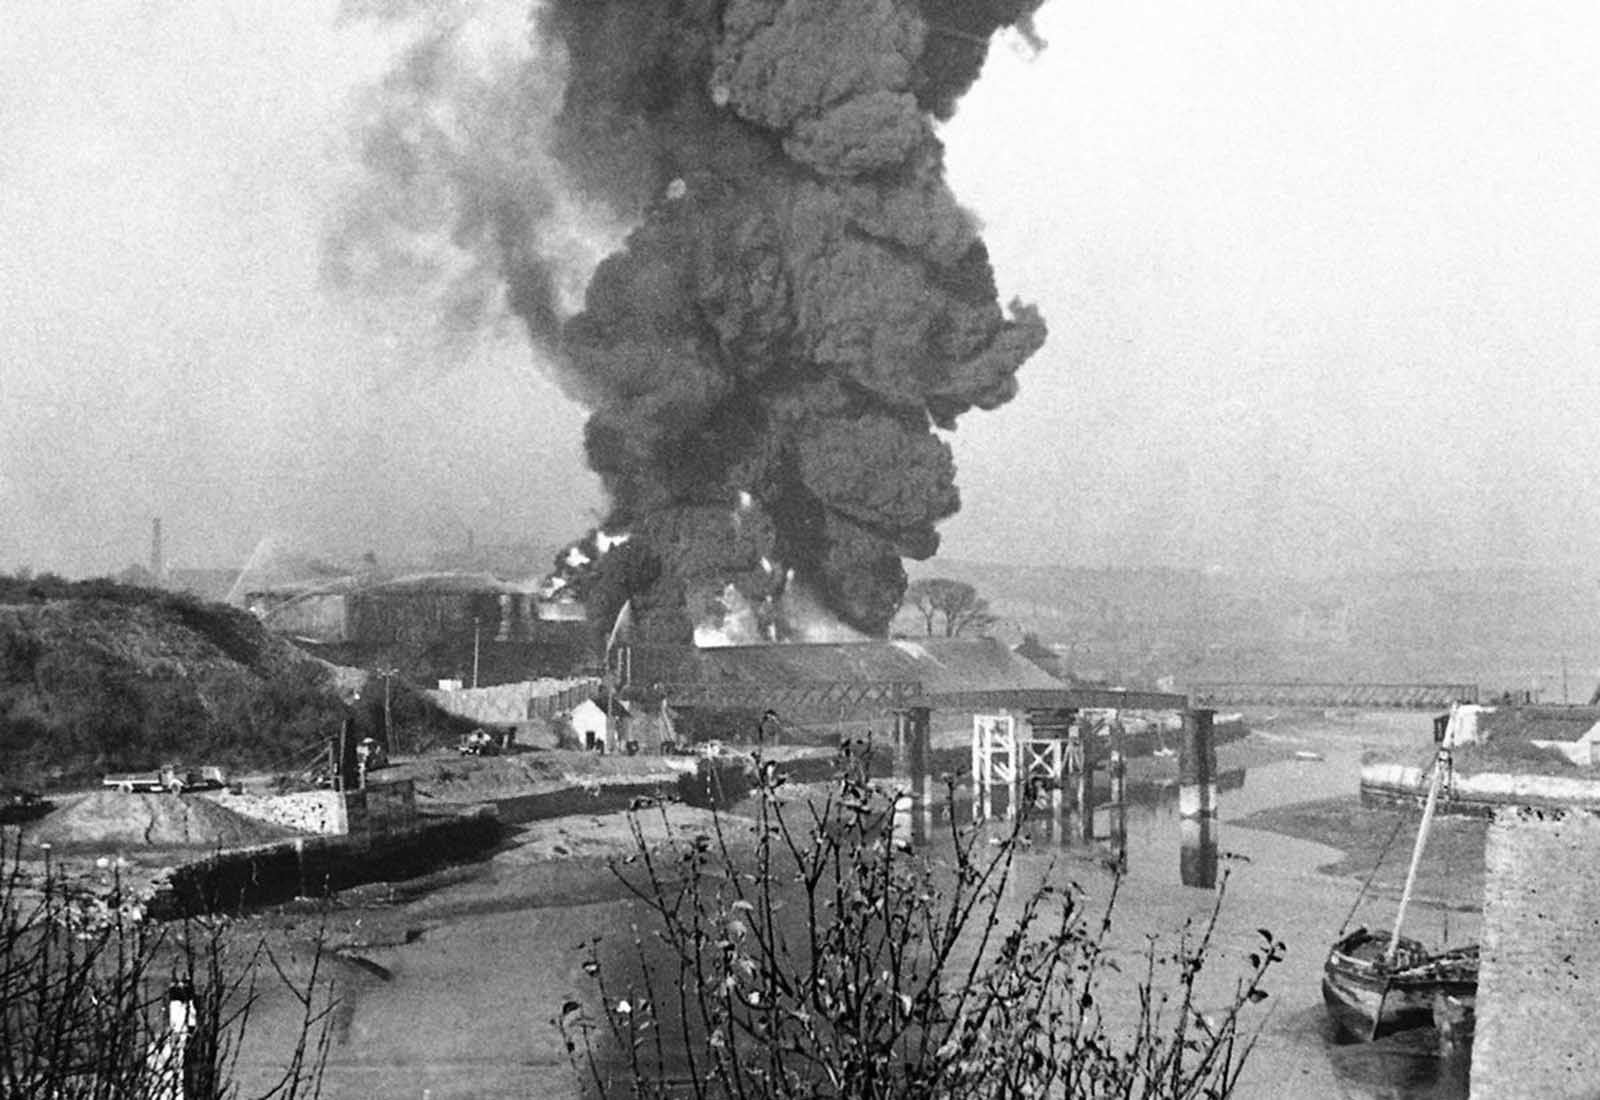 A great column of smoke billowing upward from a fire started at Plymouth, South West England, in November 1940, as a result of heavy enemy bombardment.